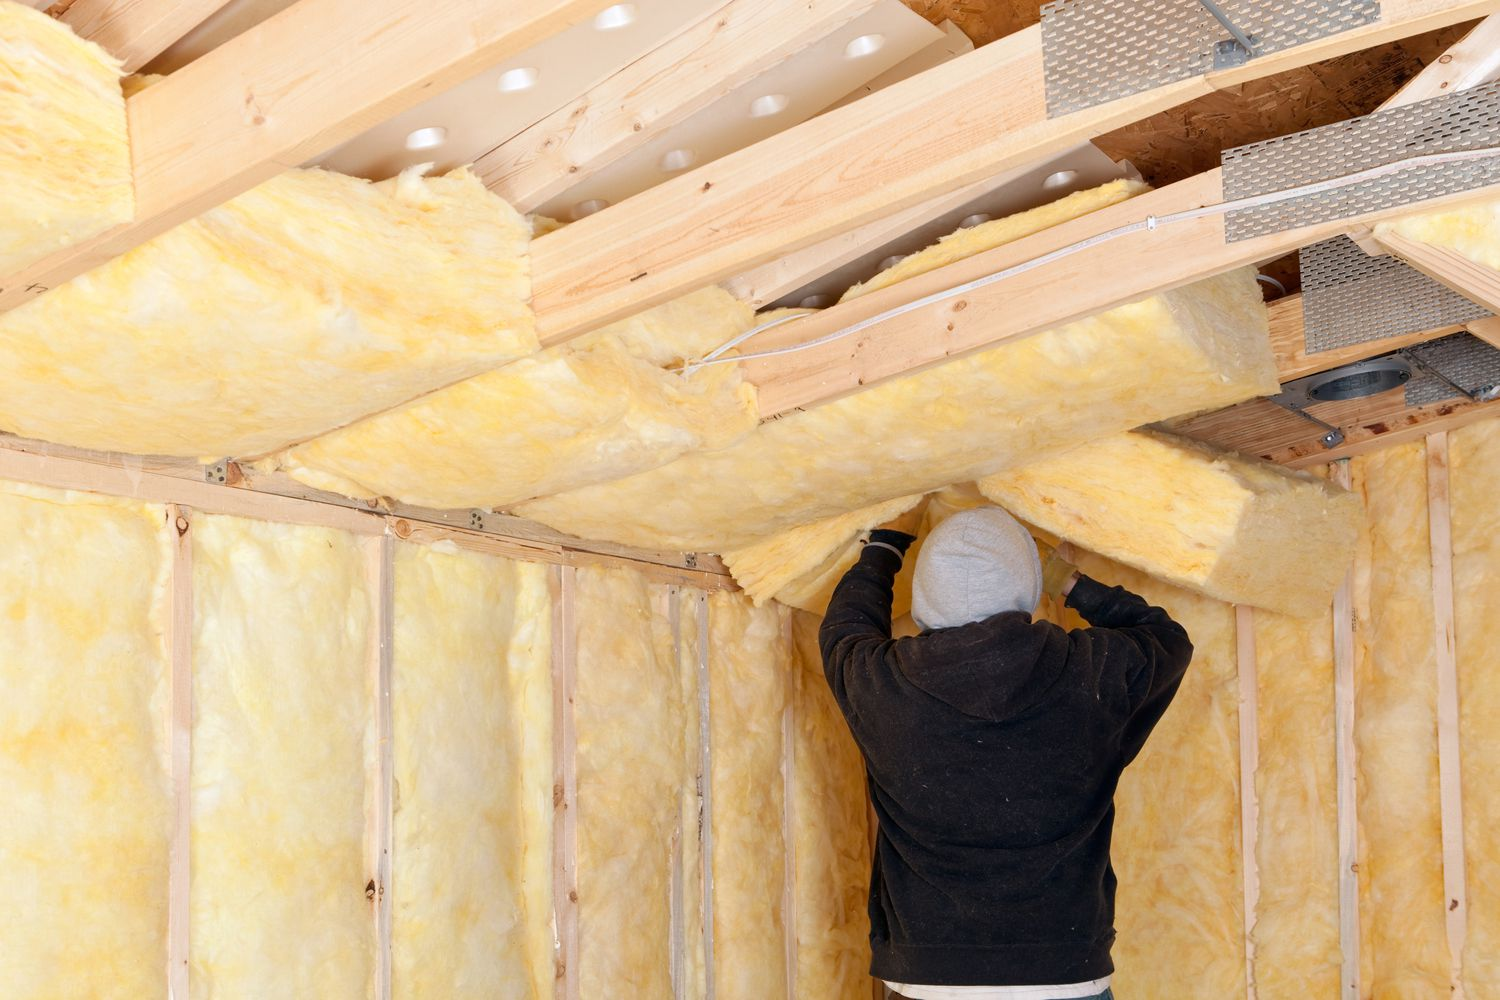 Install the Insulations